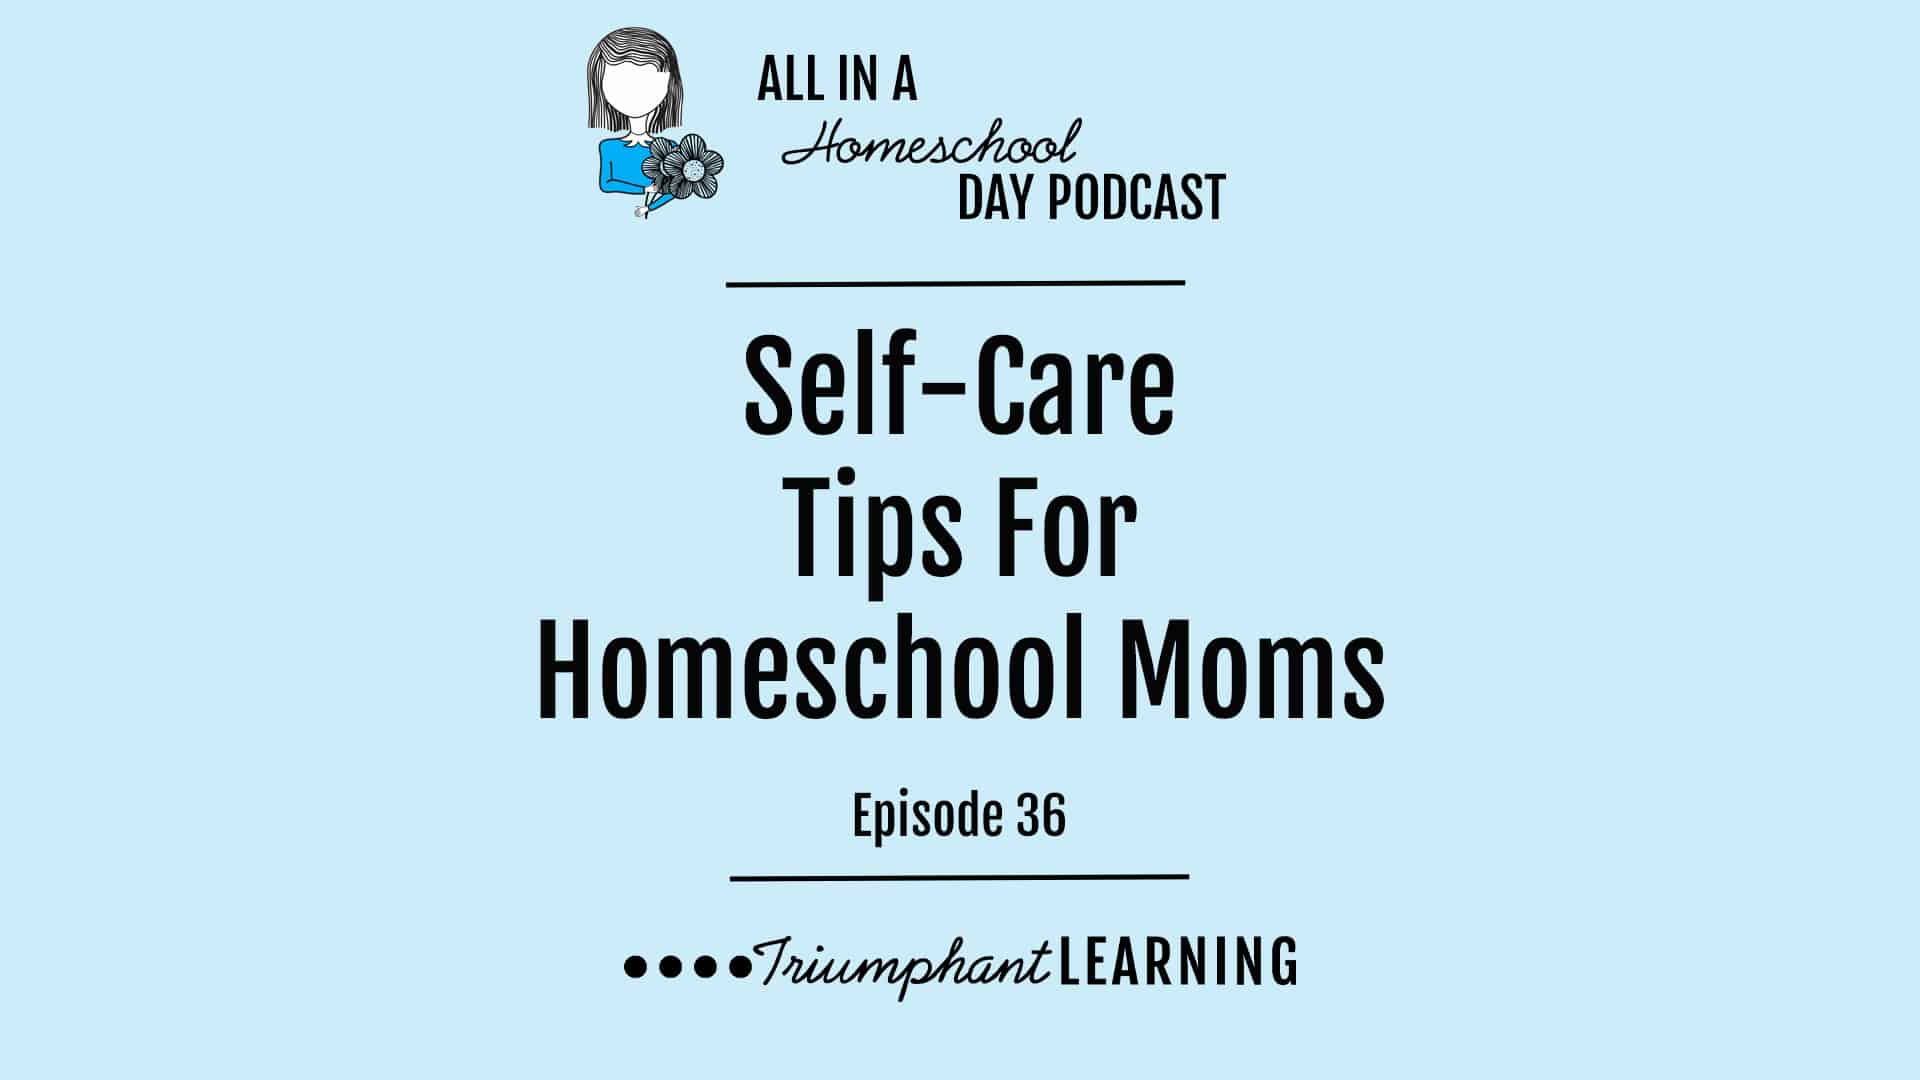 I'm sure you've heard it before: Take care of yourself before taking care of others. It really is important for us to put our self-care as a priority in our lives and it is not selfish to focus on your needs. When you take care of yourself, you will have more energy and a better mood to take care of your family. In this episode, we will explore practical suggestions for four areas homeschool moms often struggle with to take care of themselves: sleep, exercise, healthy eating, and finding joy.